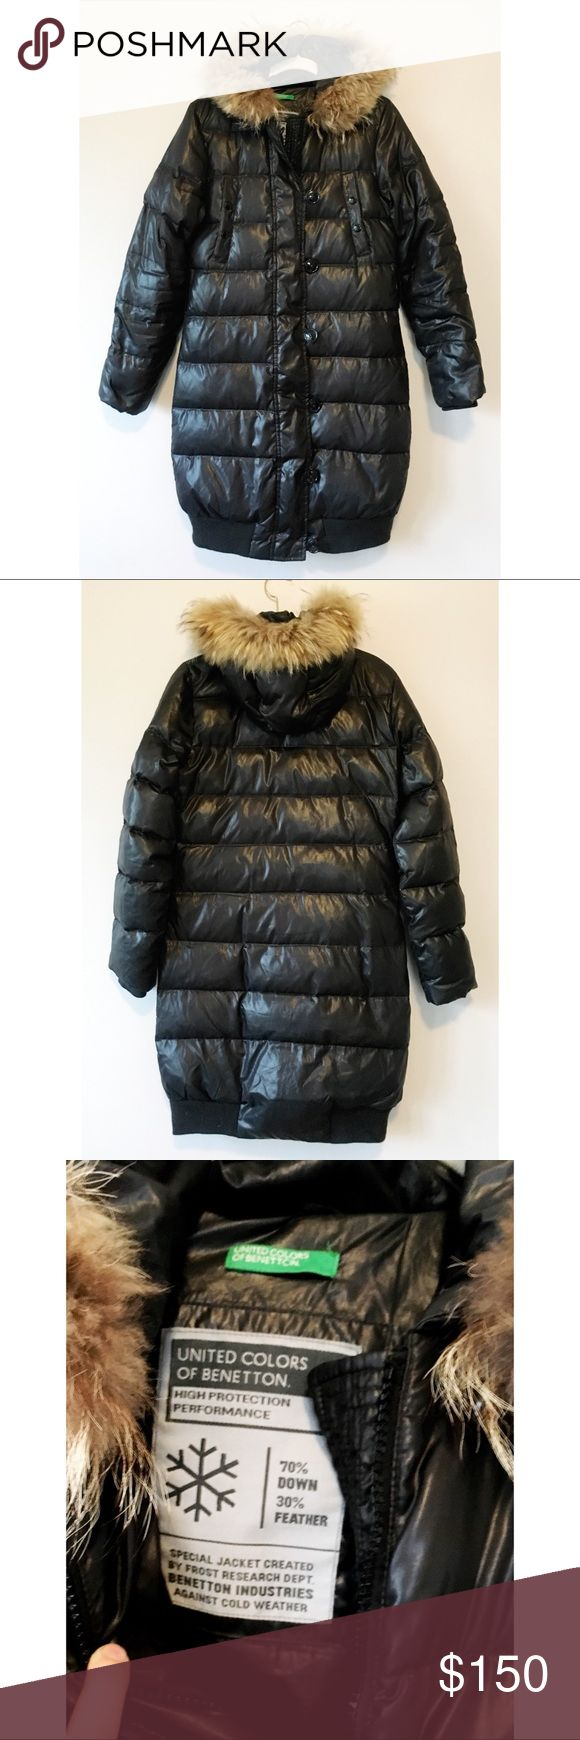 """United Colors of Benetton Long Puffer Jacket ITEM: United Colors of Benetton Puffer Jacket Material: Polyester Shell, 70% Down/30%Feather Filling, Fur Hood Lining Labeled size: 40 Condition: EUC. No rips, stains, or tears. Missing original belt. Minor pilling on ribbing at bottom of coat. MEASUREMENTS TAKEN FLAT: Waist: 17.5"""" Length: 36"""" Bust: 19"""" Shoulders: 16.5"""" Sleeve Length: 24"""" United Colors Of Benetton Jackets & Coats Puffers"""